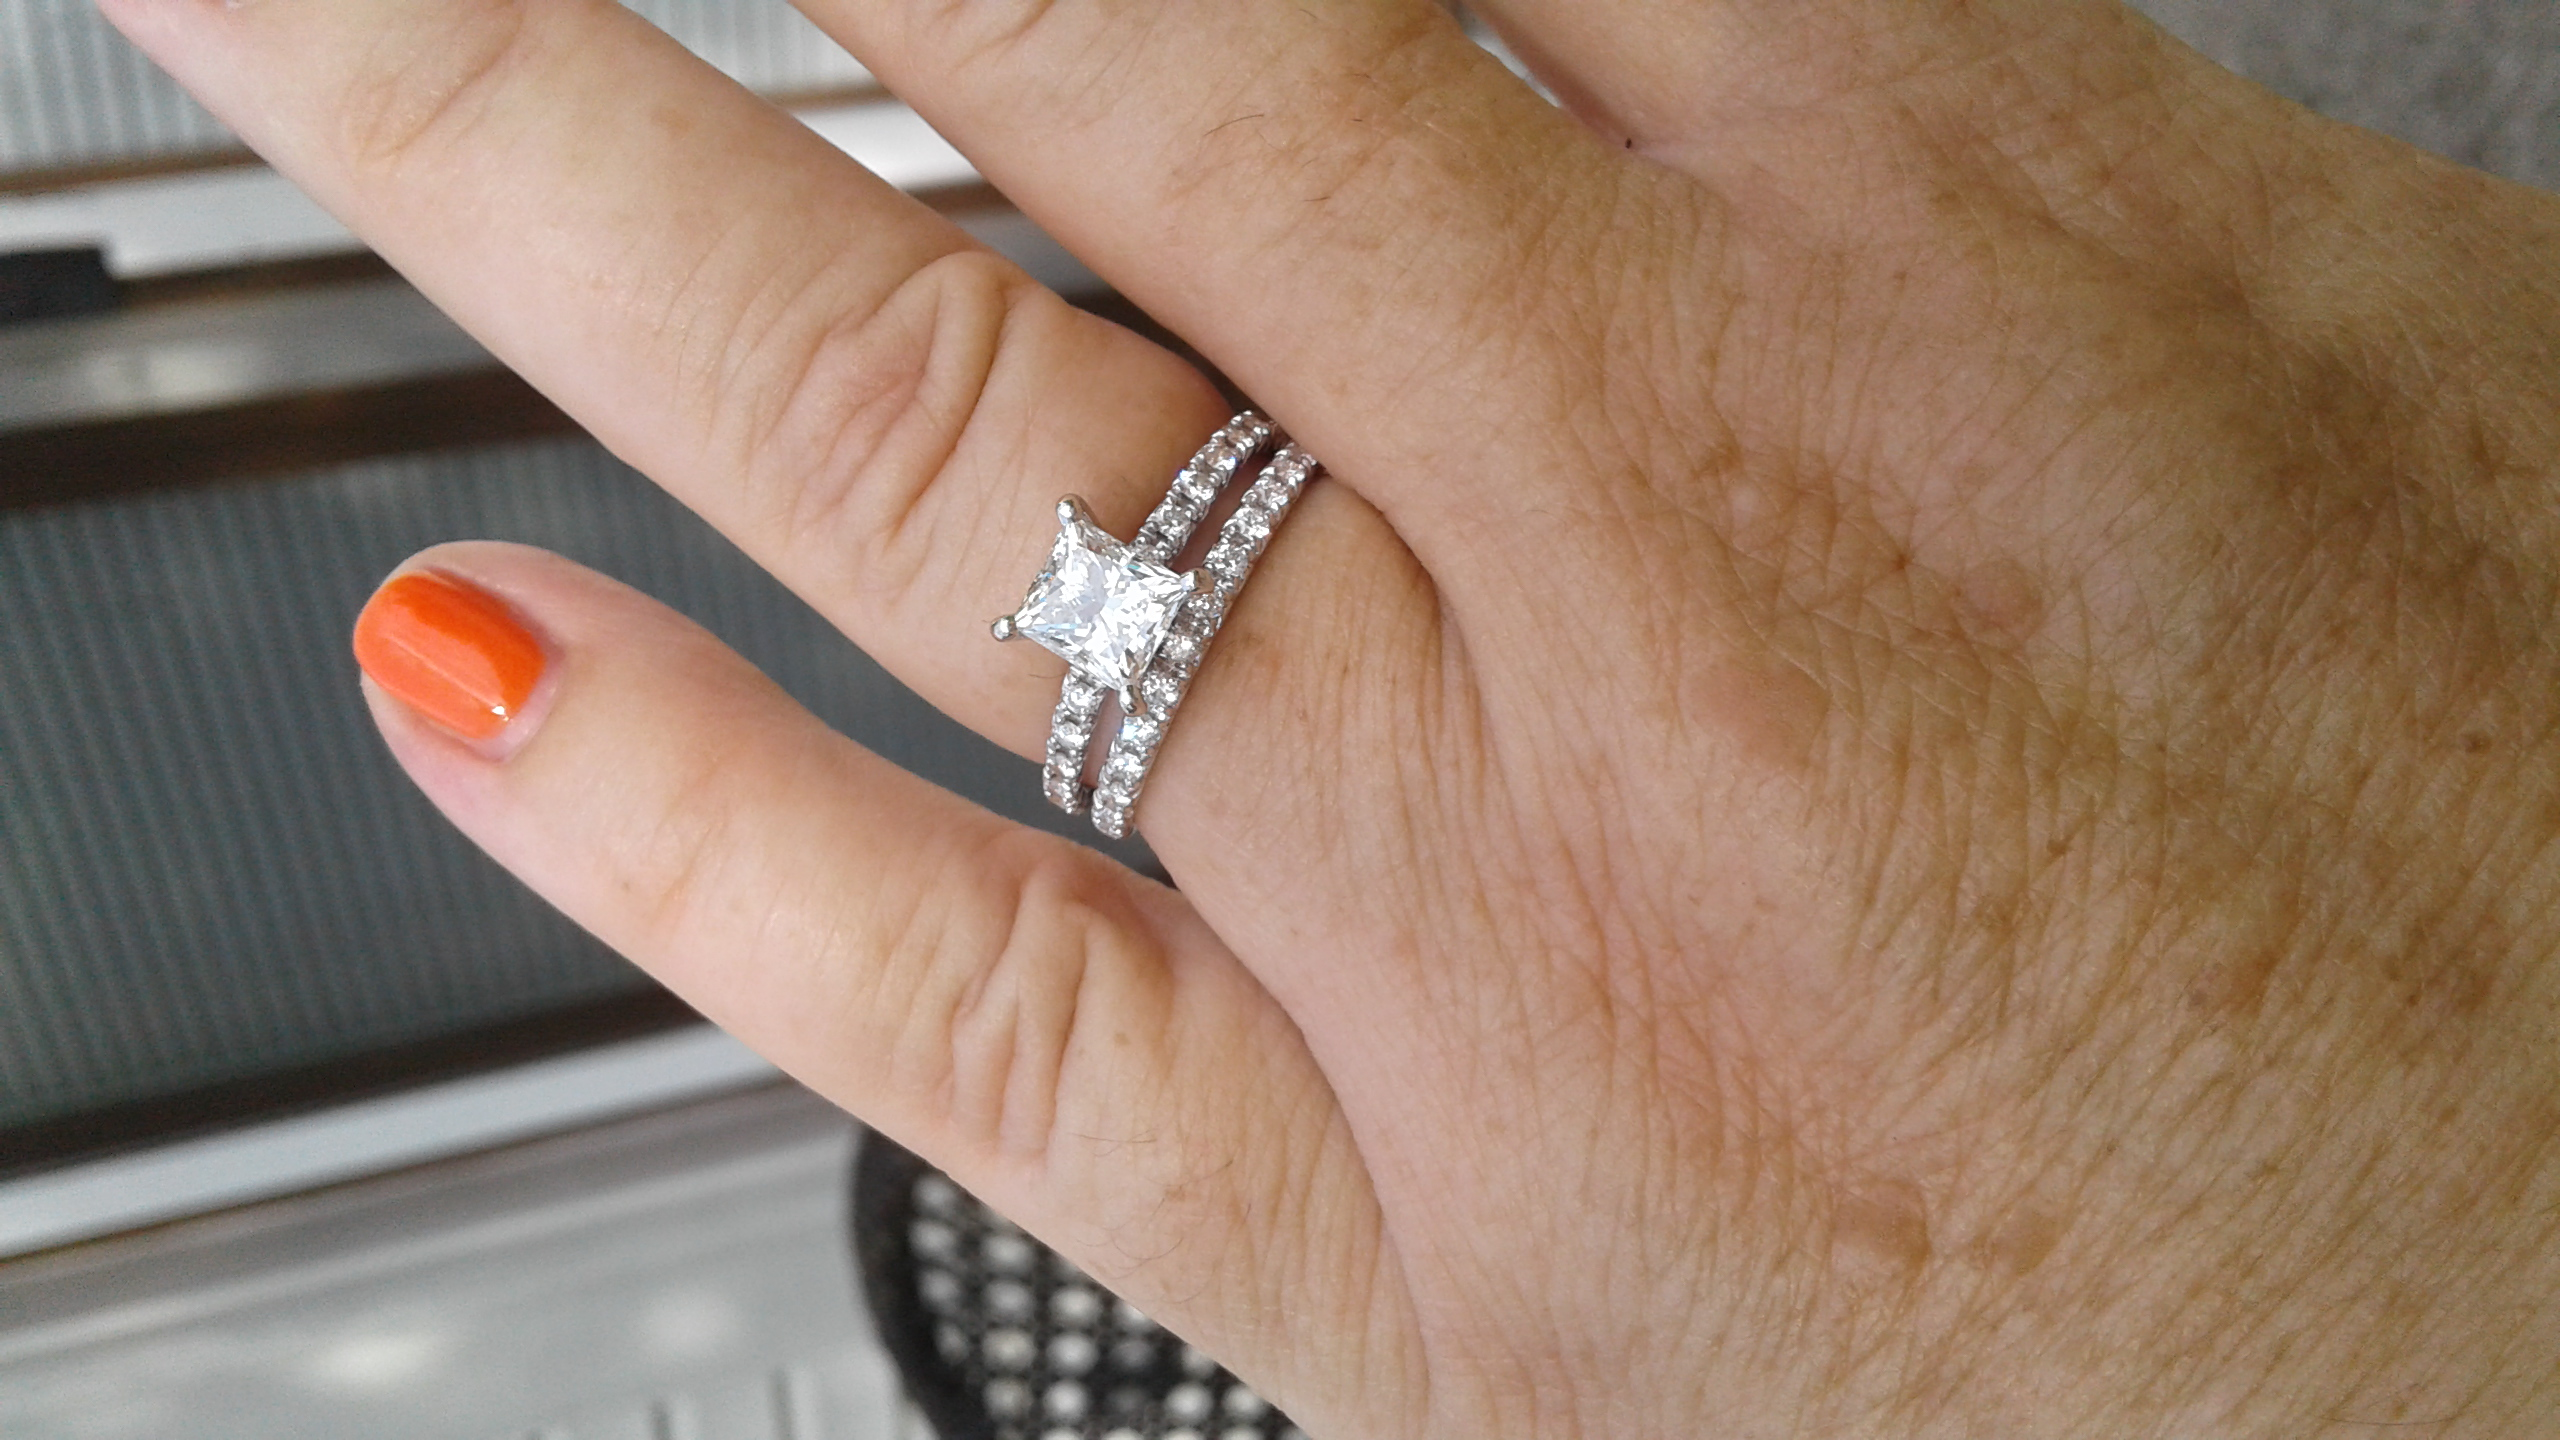 i think it makes it obvious that its two distinctive rings and not just one thick band